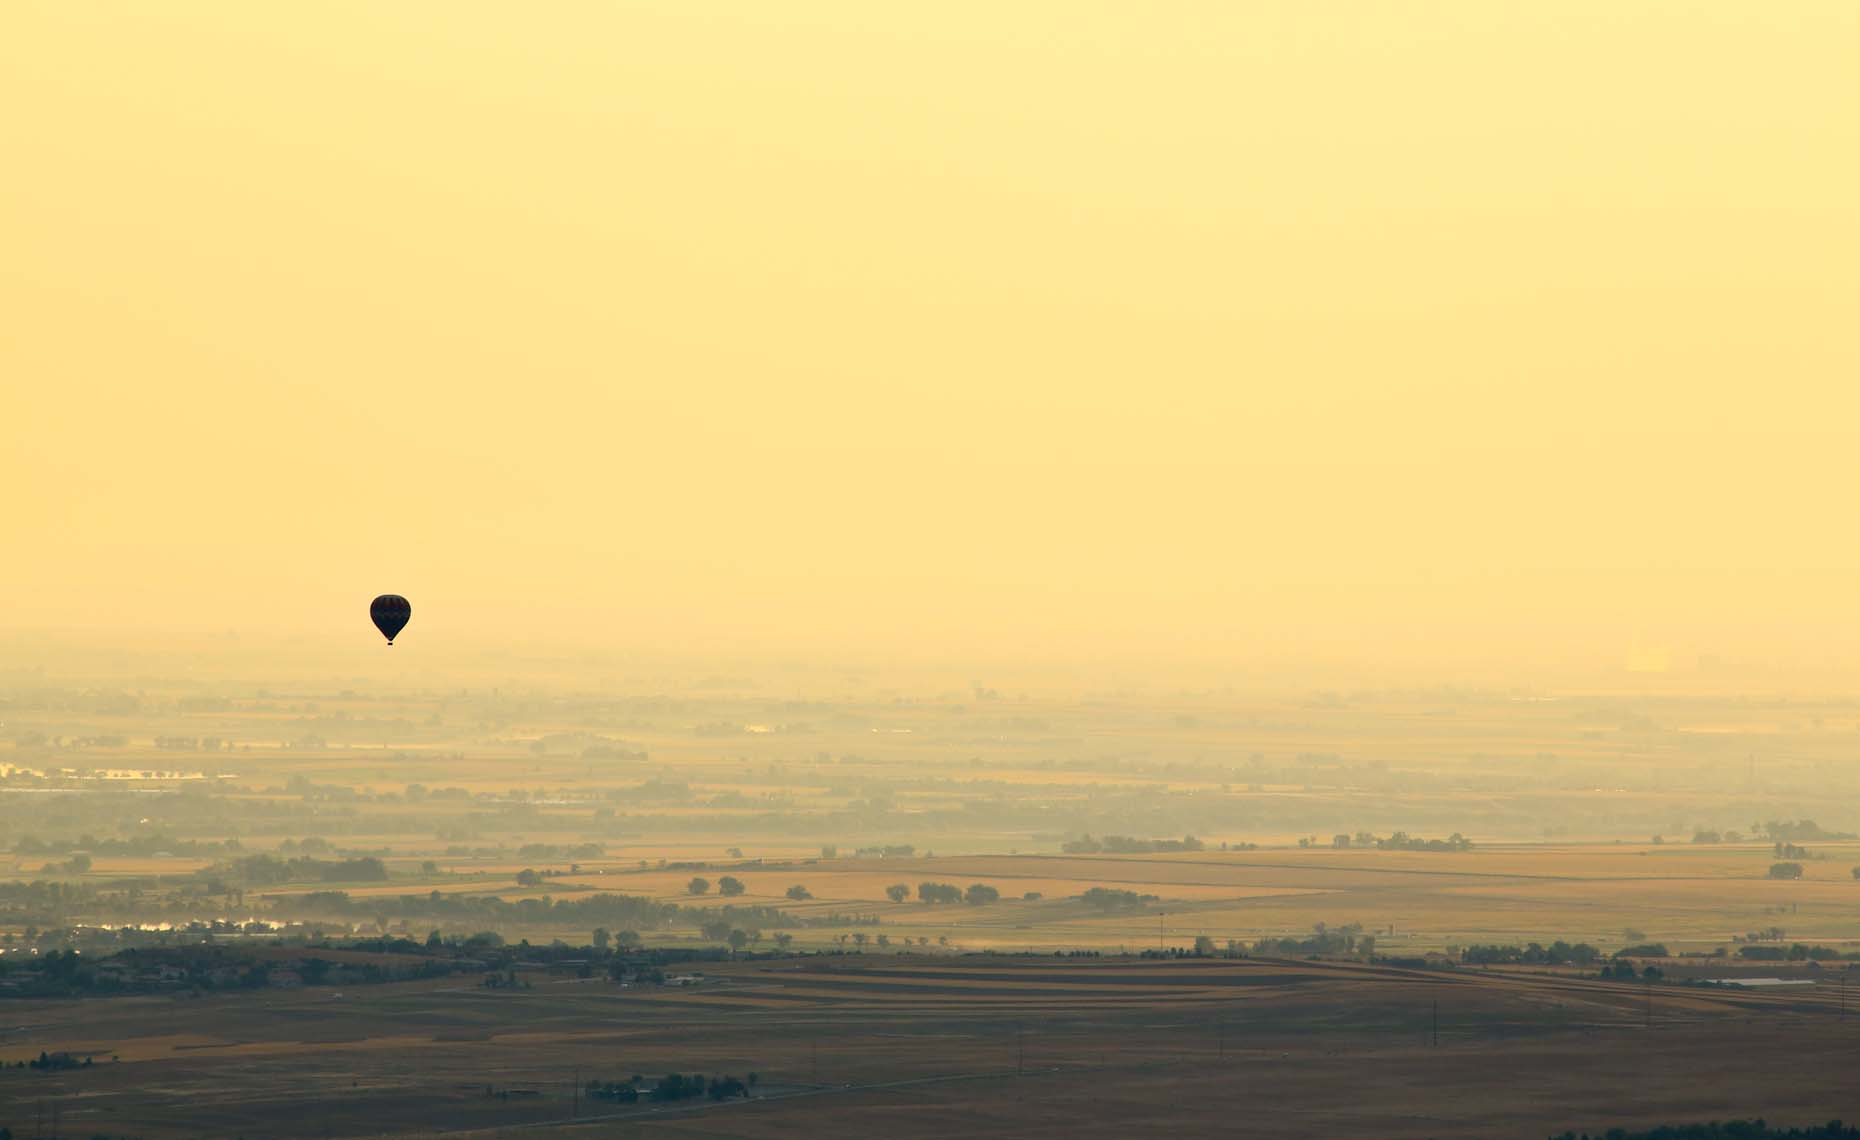 High Plains Balloon